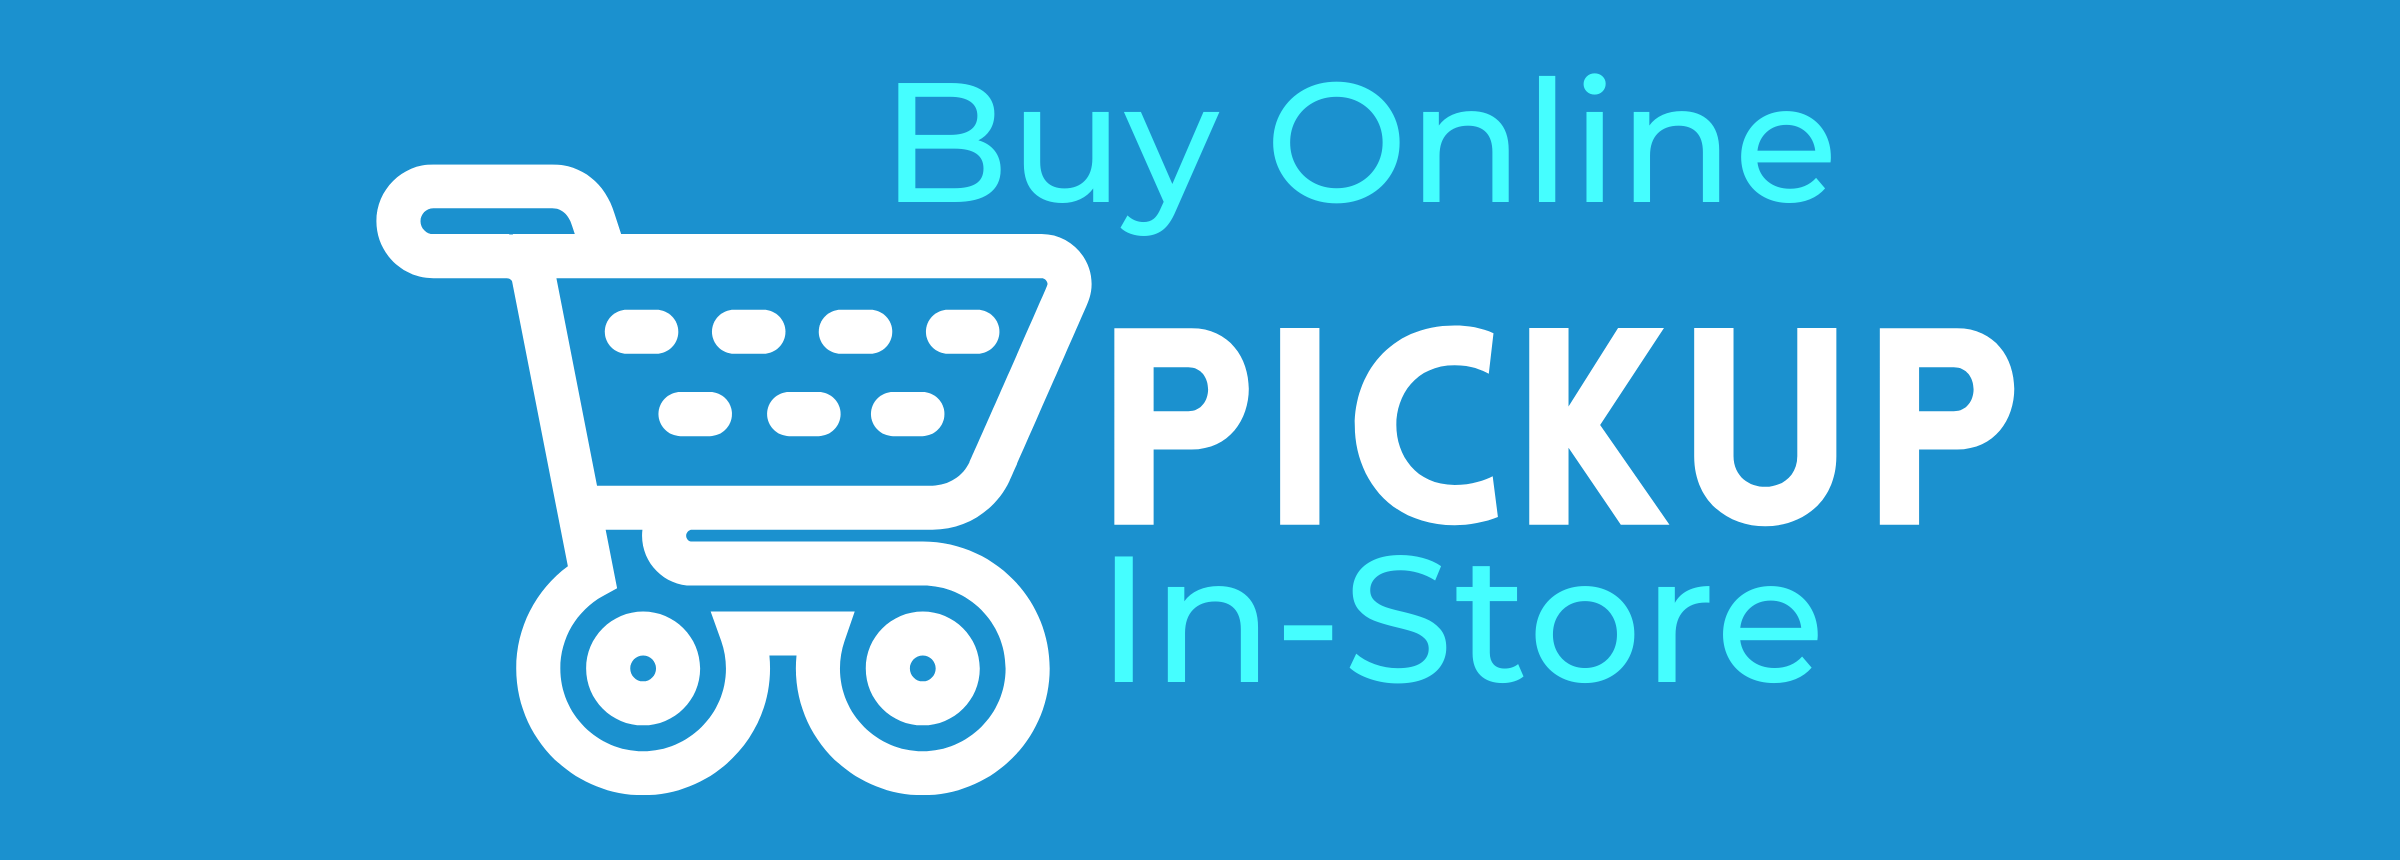 Buy Online Pickup In Store Blog Post Header